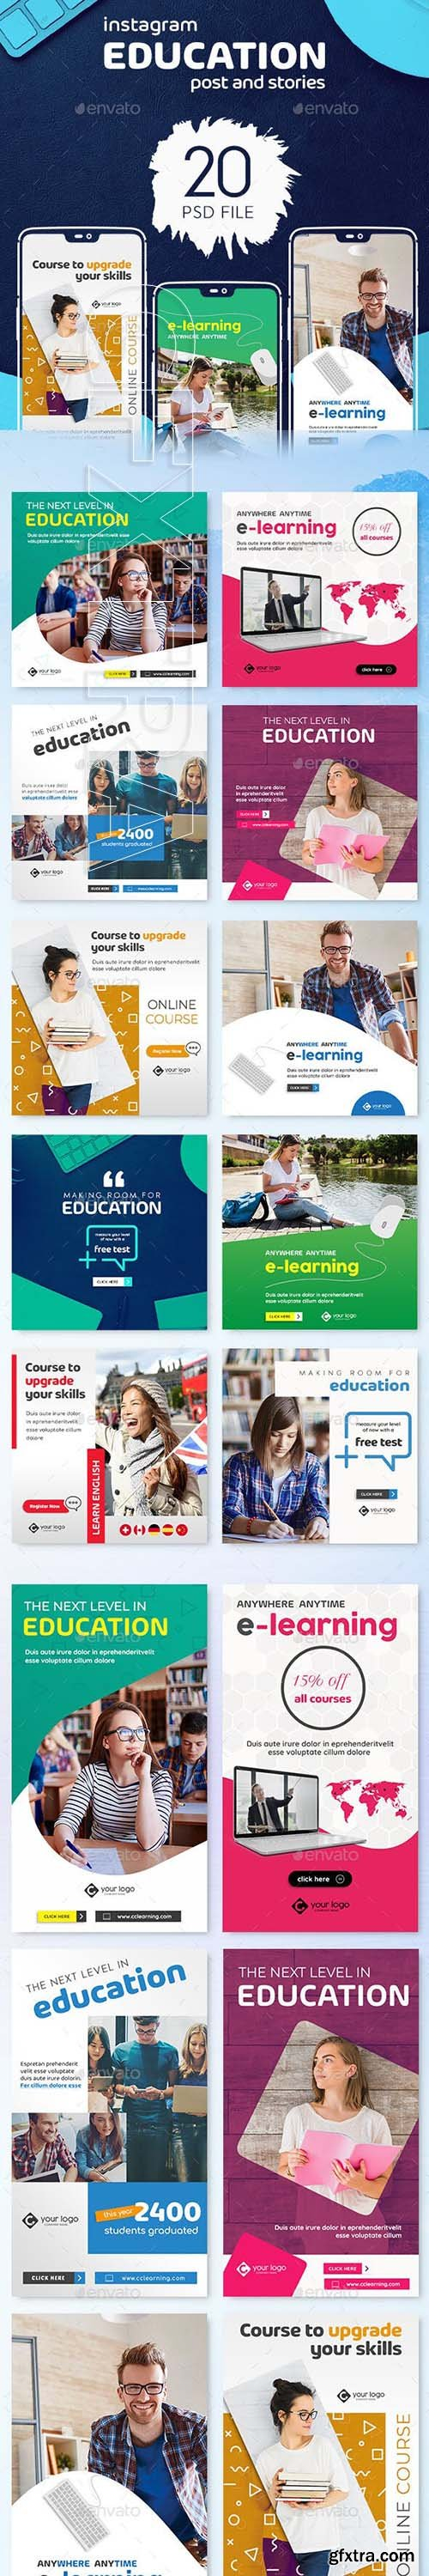 GraphicRiver - Education Instagram Post and Stories 23102063